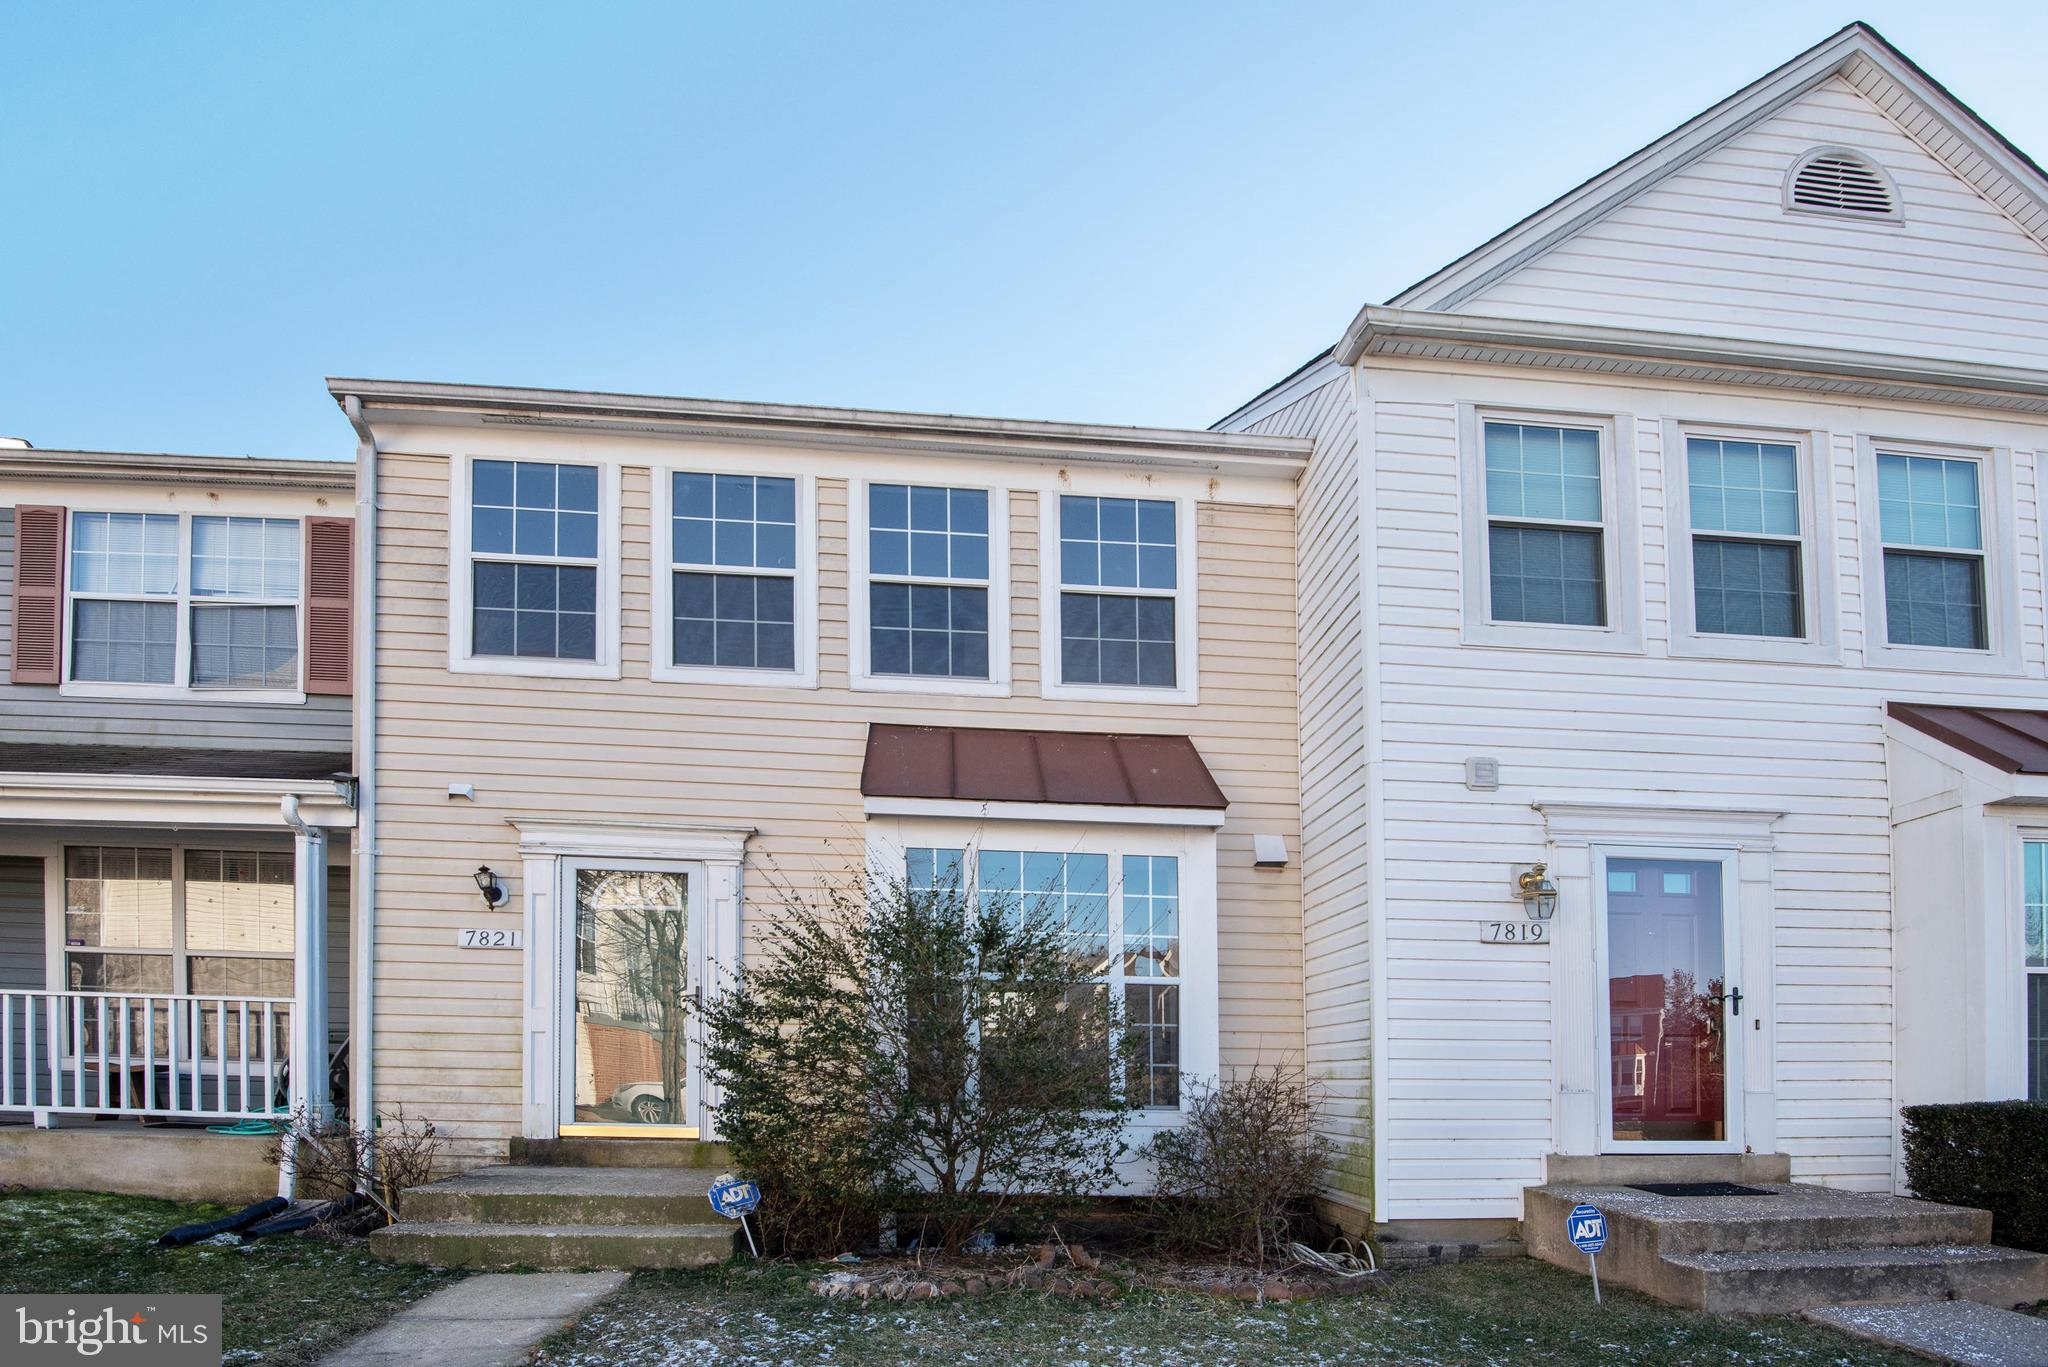 7821 SOMERSET COURT, GREENBELT, MD 20770